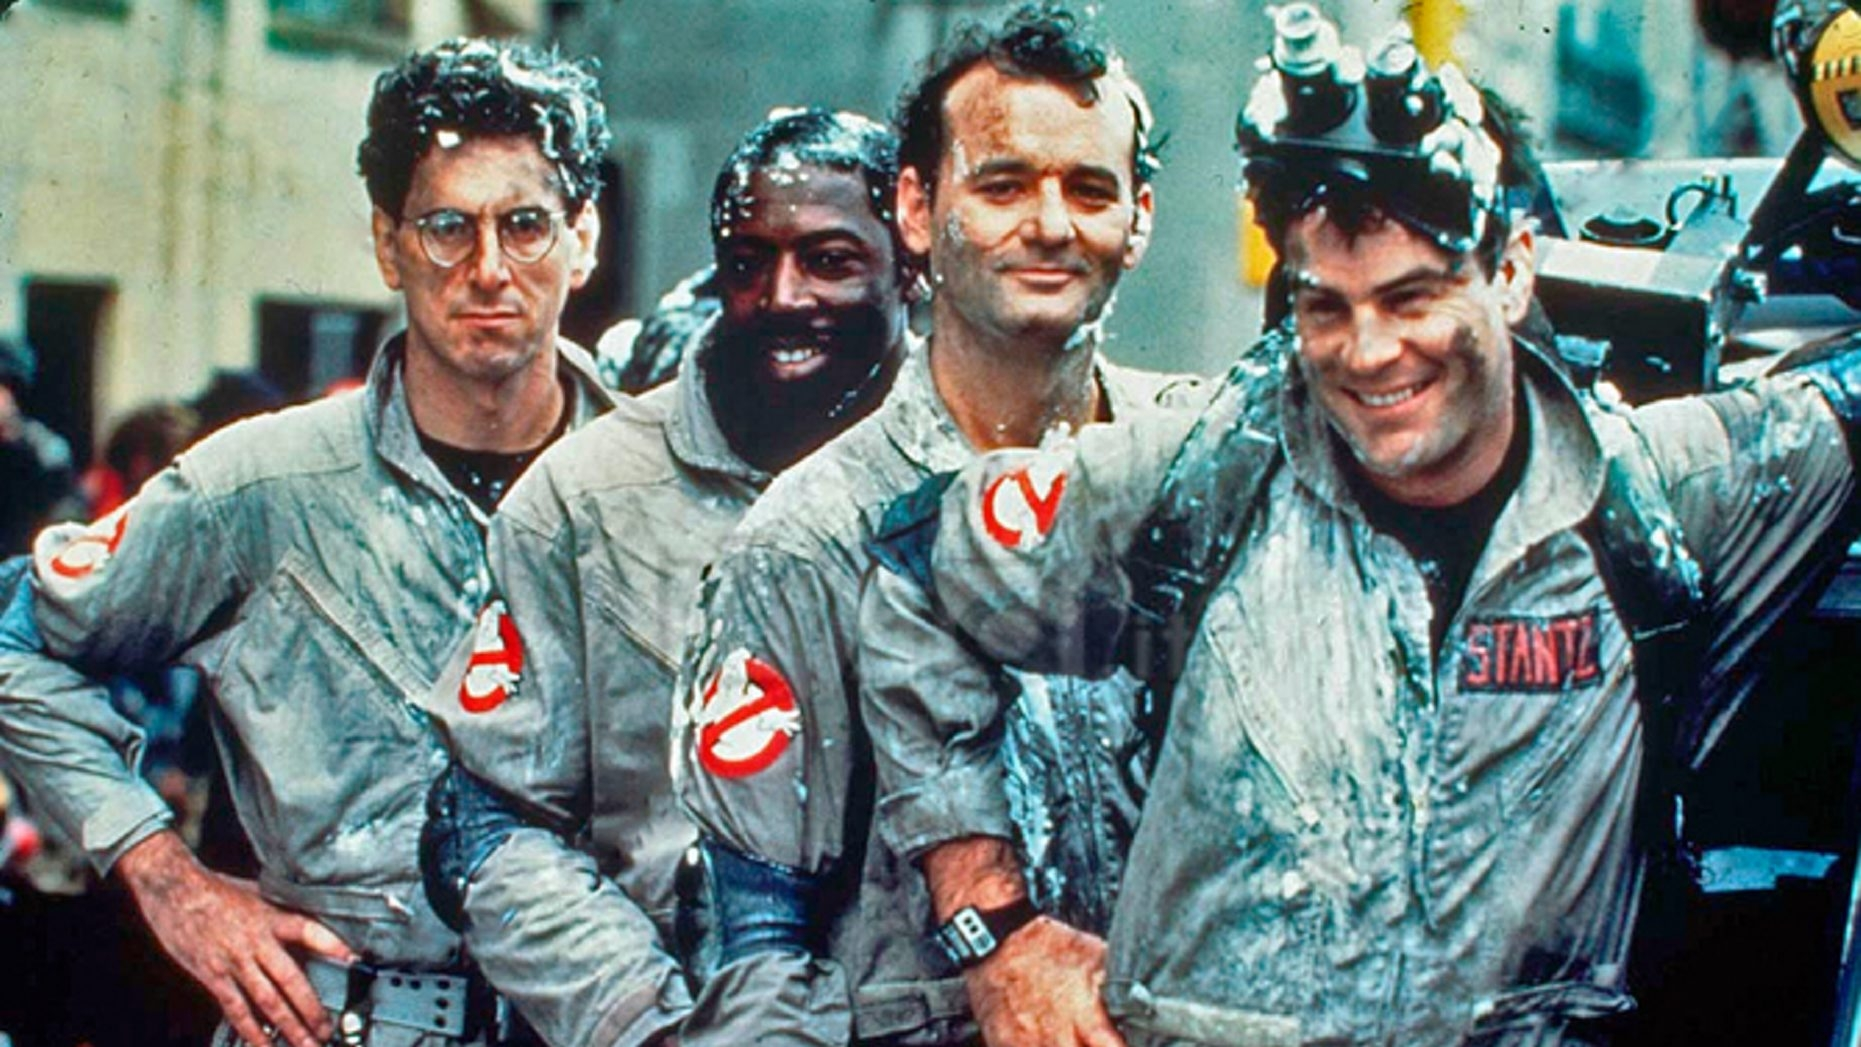 """Ghostbusters"" will be shown Oct. 22 at the North Park Theatre."